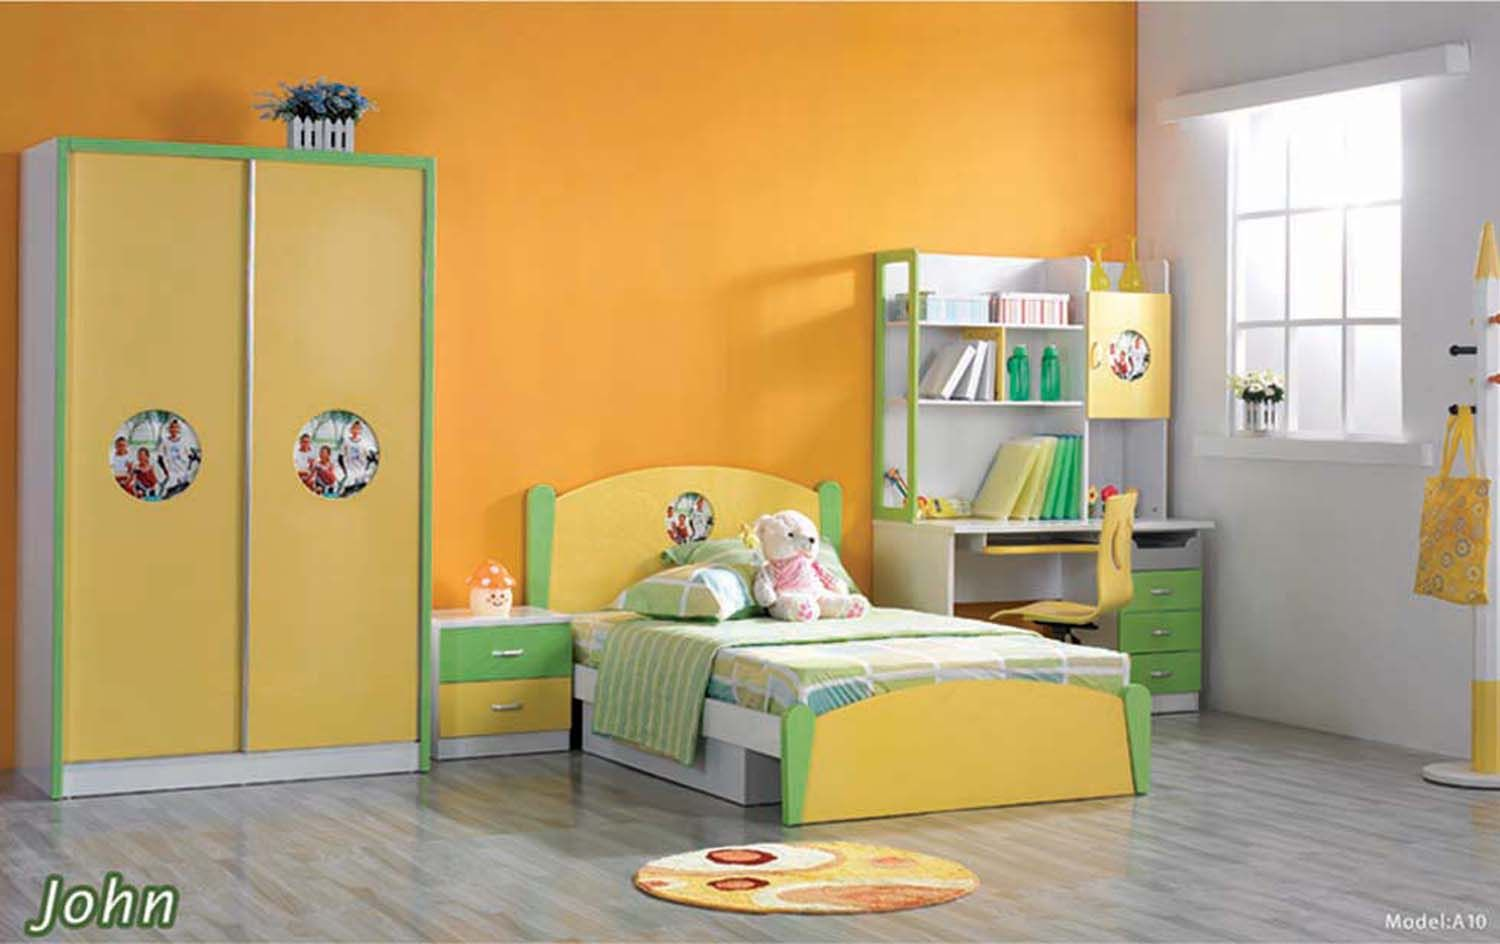 Kids Room Cabinet Design Warm Orange And White Themed Kids Room Paint Ideas With Modern